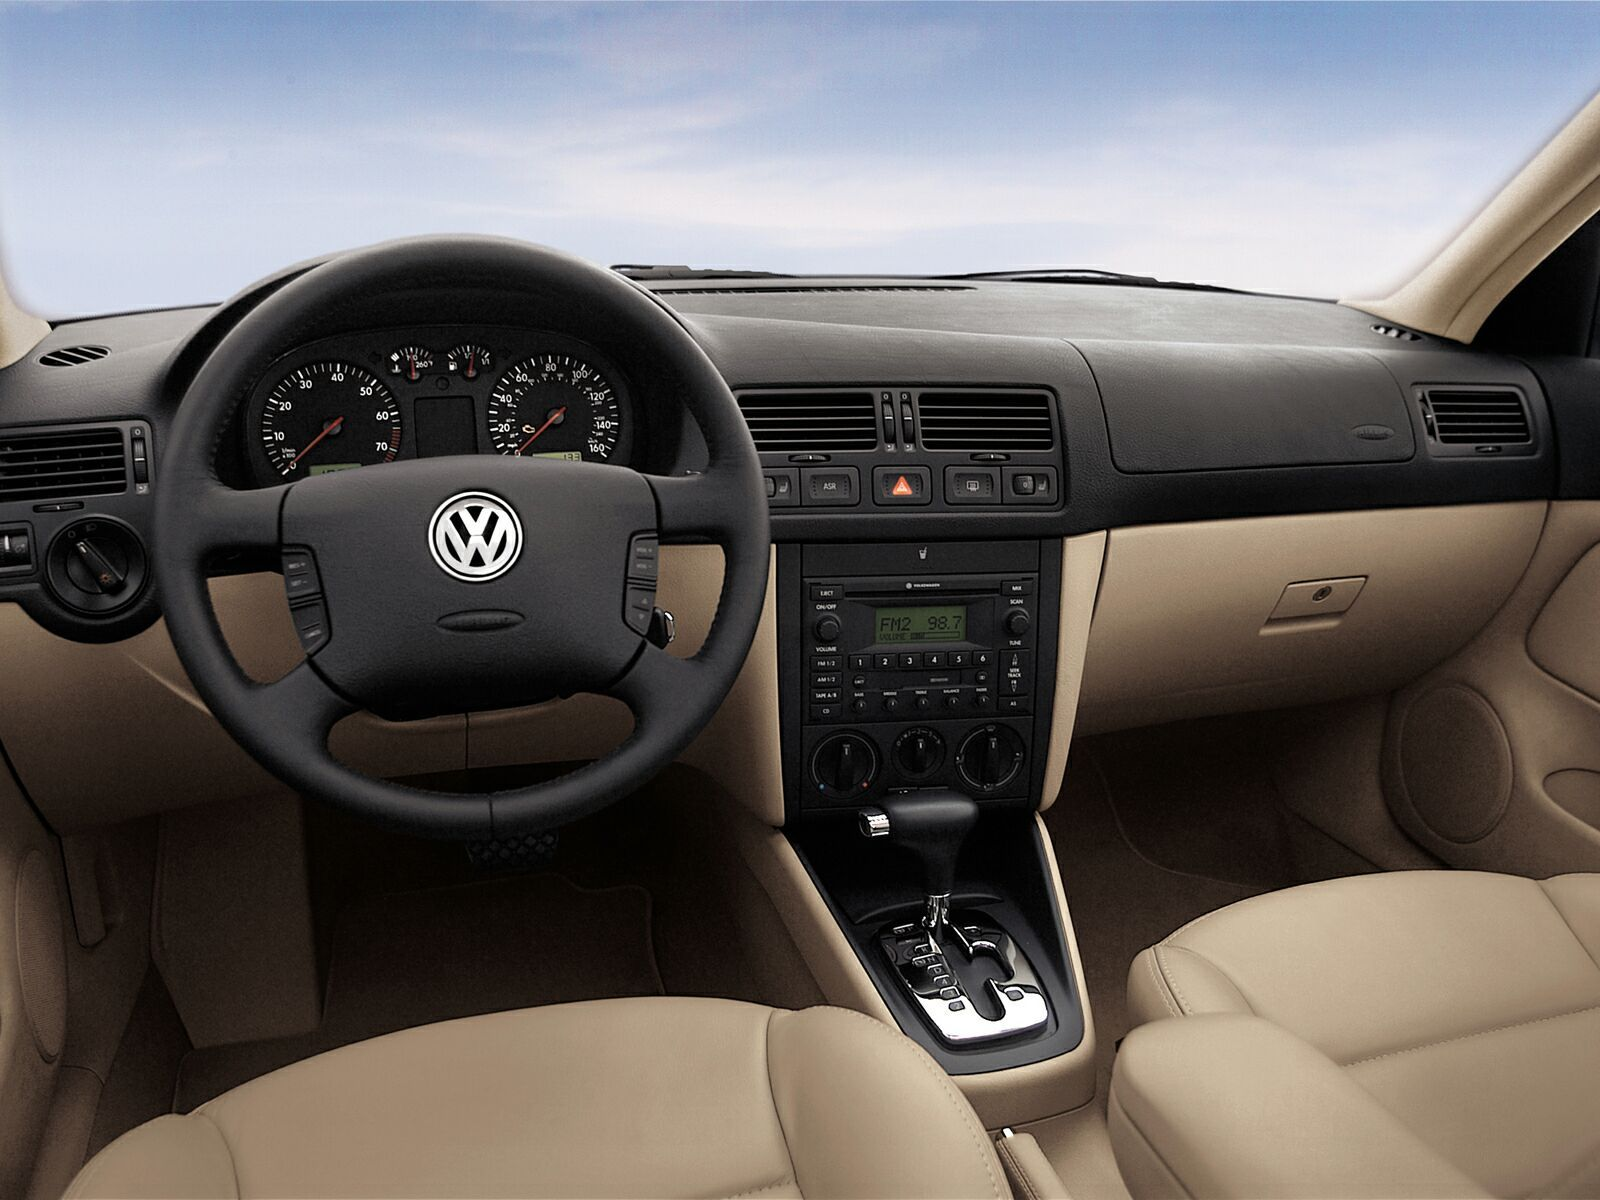 Volkswagen Jetta Picture 11318 Photo Gallery 2002 Fuse Box Diagram Pic Link Https Mk53 Pic11318